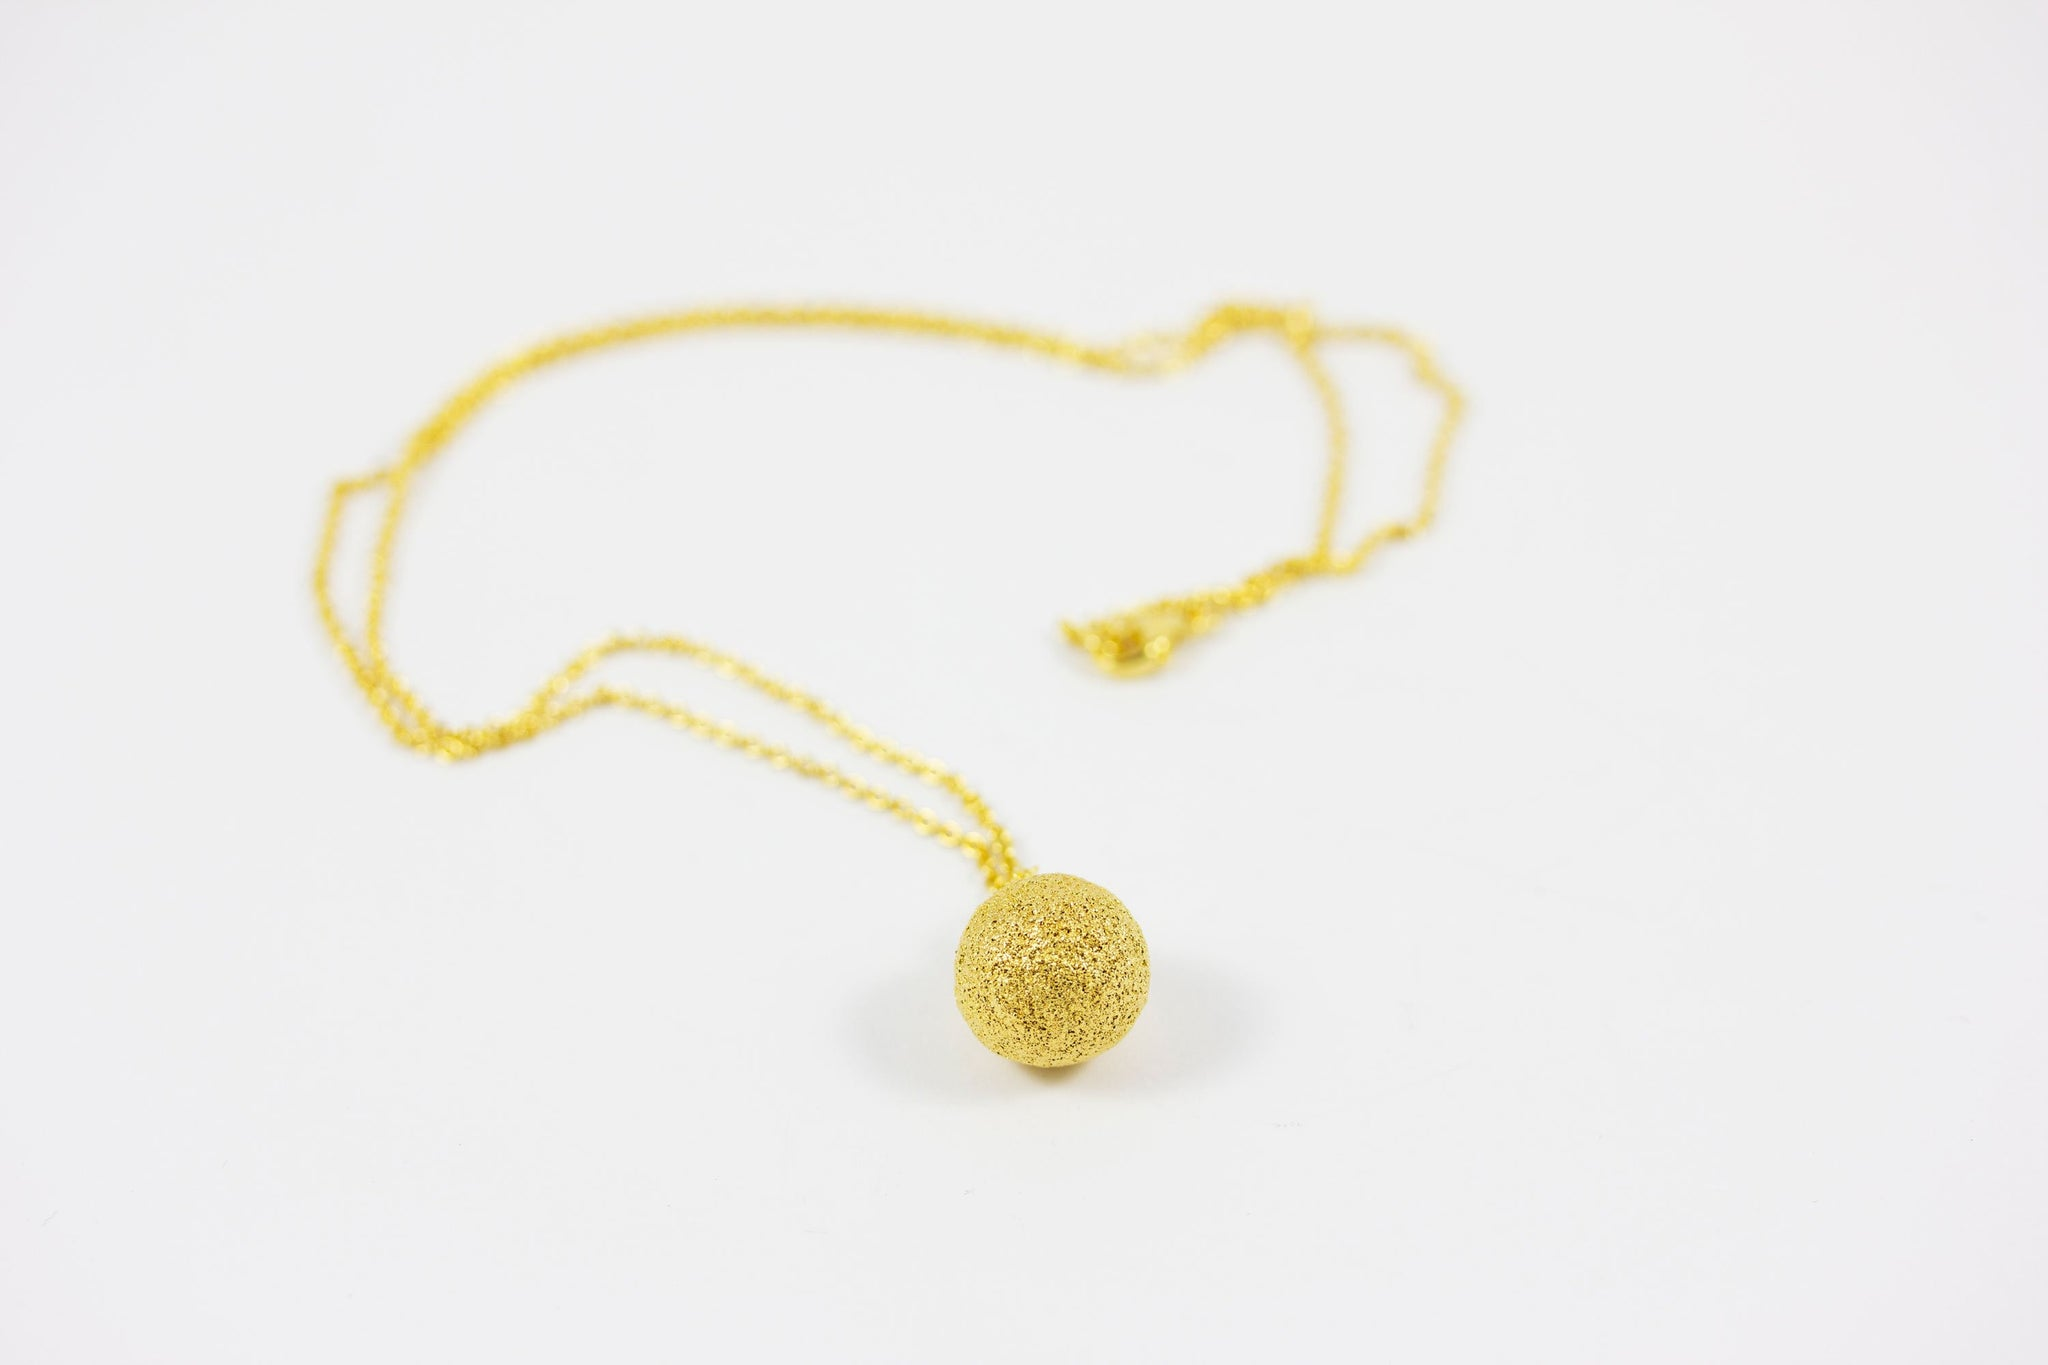 Gold Plated Silver Necklace - Lesetta